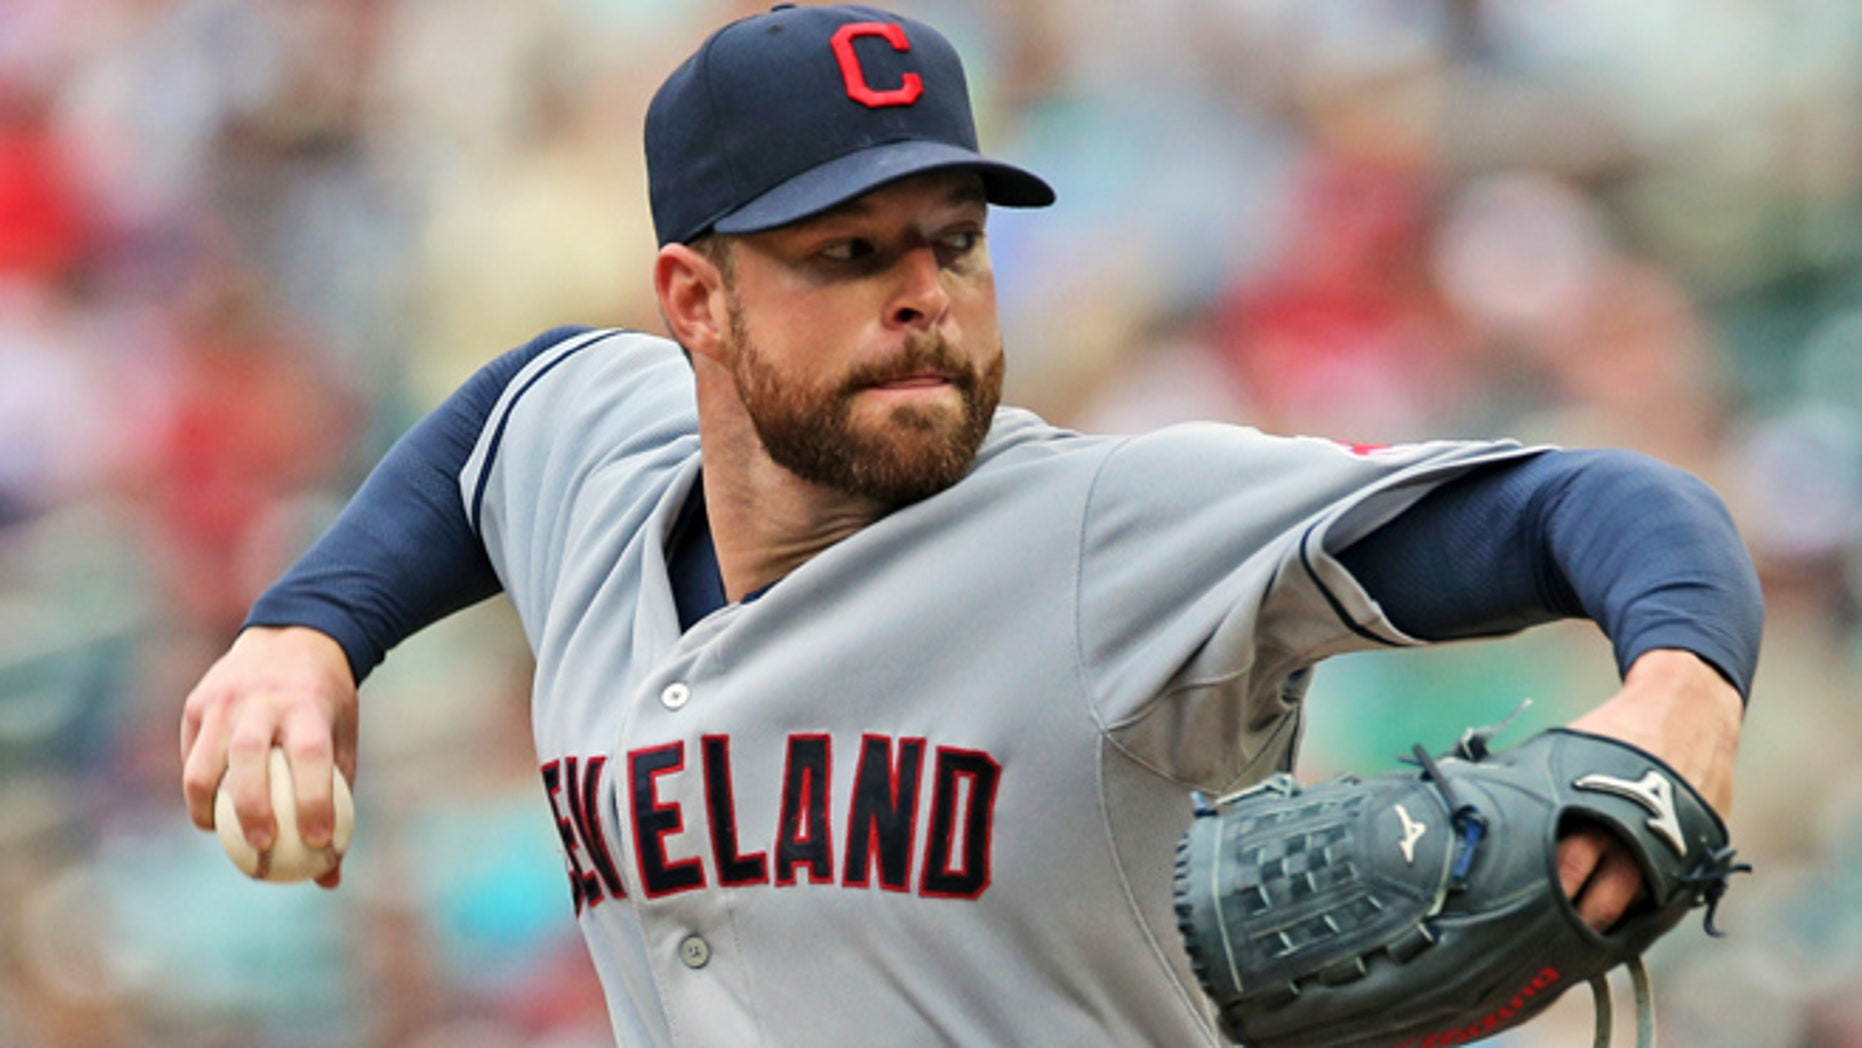 Aug. 21, 2014: Cleveland Indians pitcher Corey Kluber throws against the Minnesota Twins during a baseball game in Minneapolis.